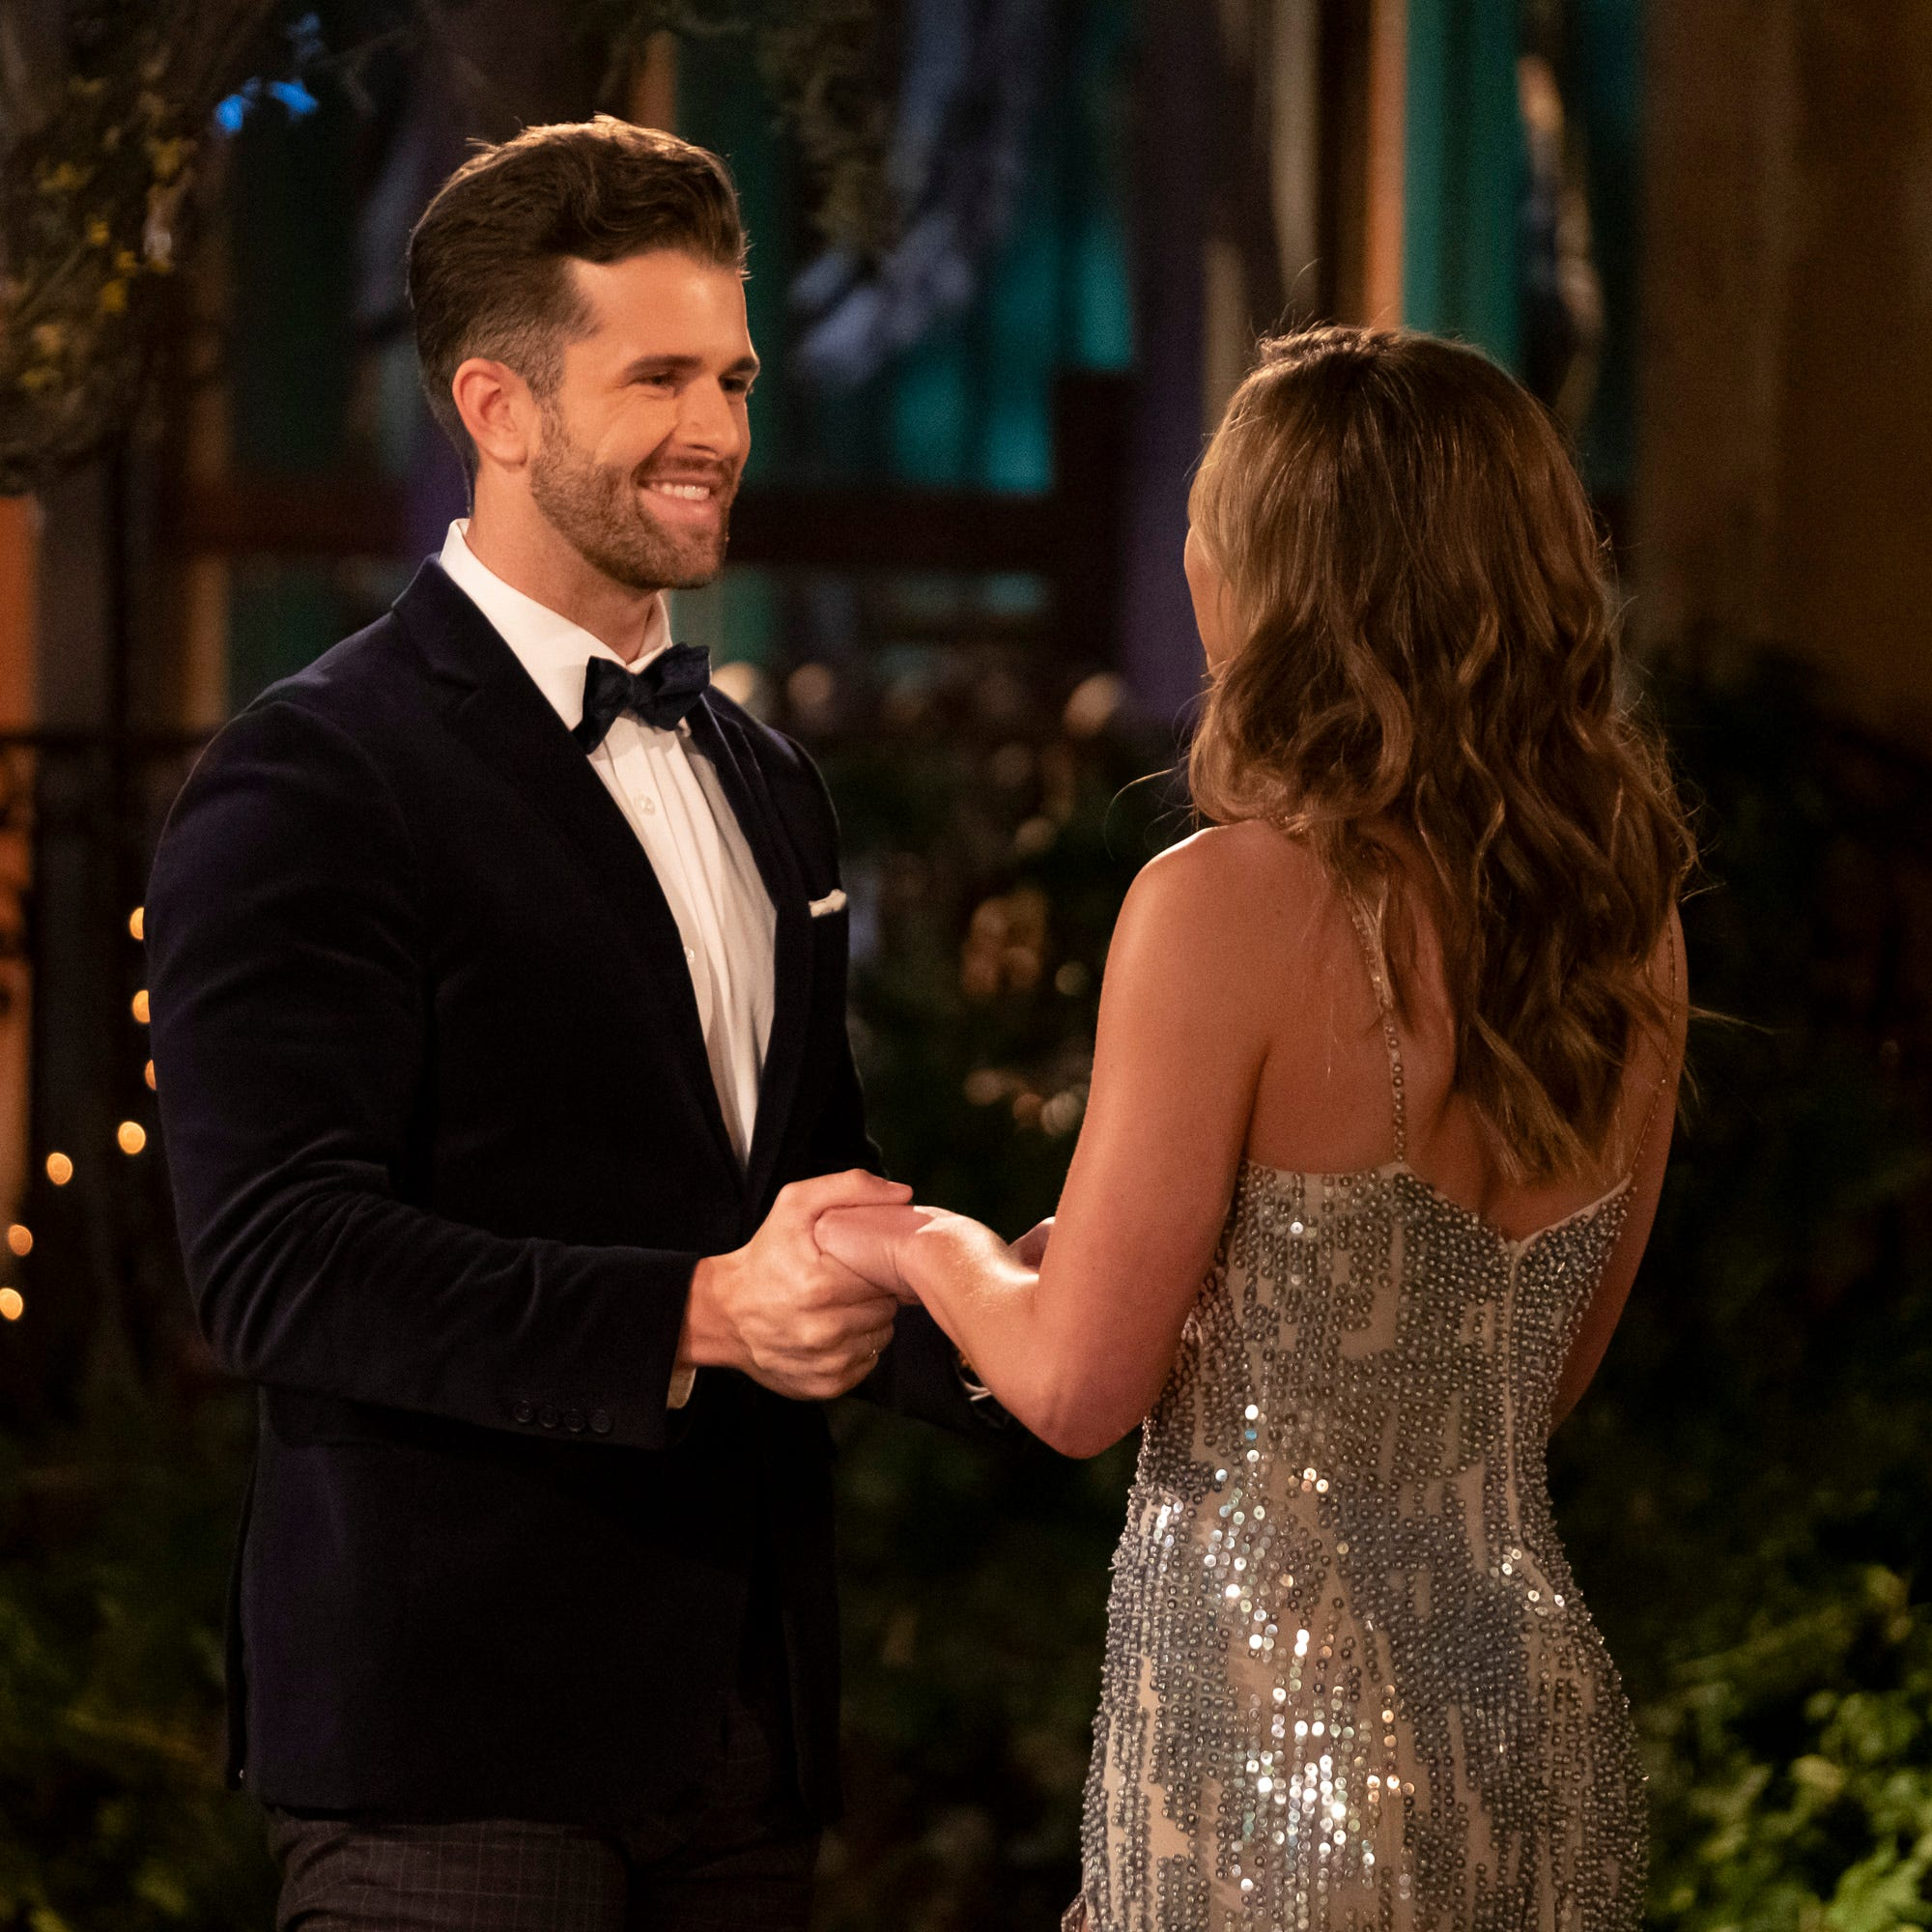 How desperate! Knoxville's Jed Wyatt sings 'Roll Tide' to 'Bachelorette' Hannah Brown